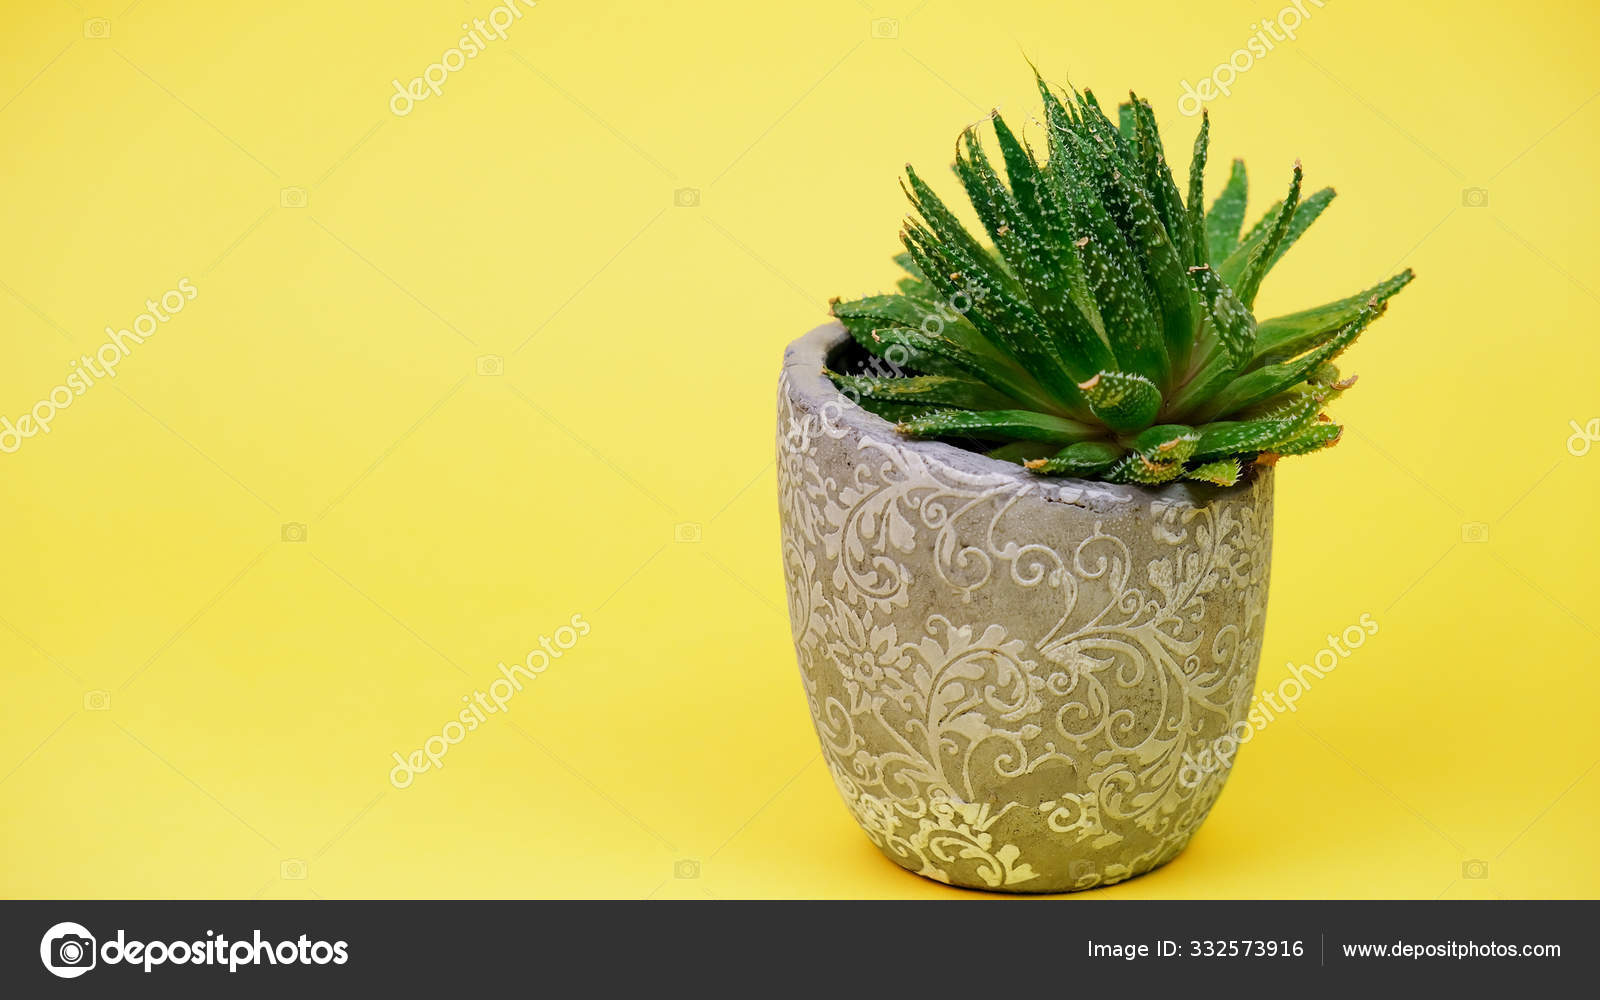 Succulent Plant In Pot On Vibrant Yellow Background Copy Space Banner 16x9 Format Stock Photo Image By C Mkhamidulina 332573916